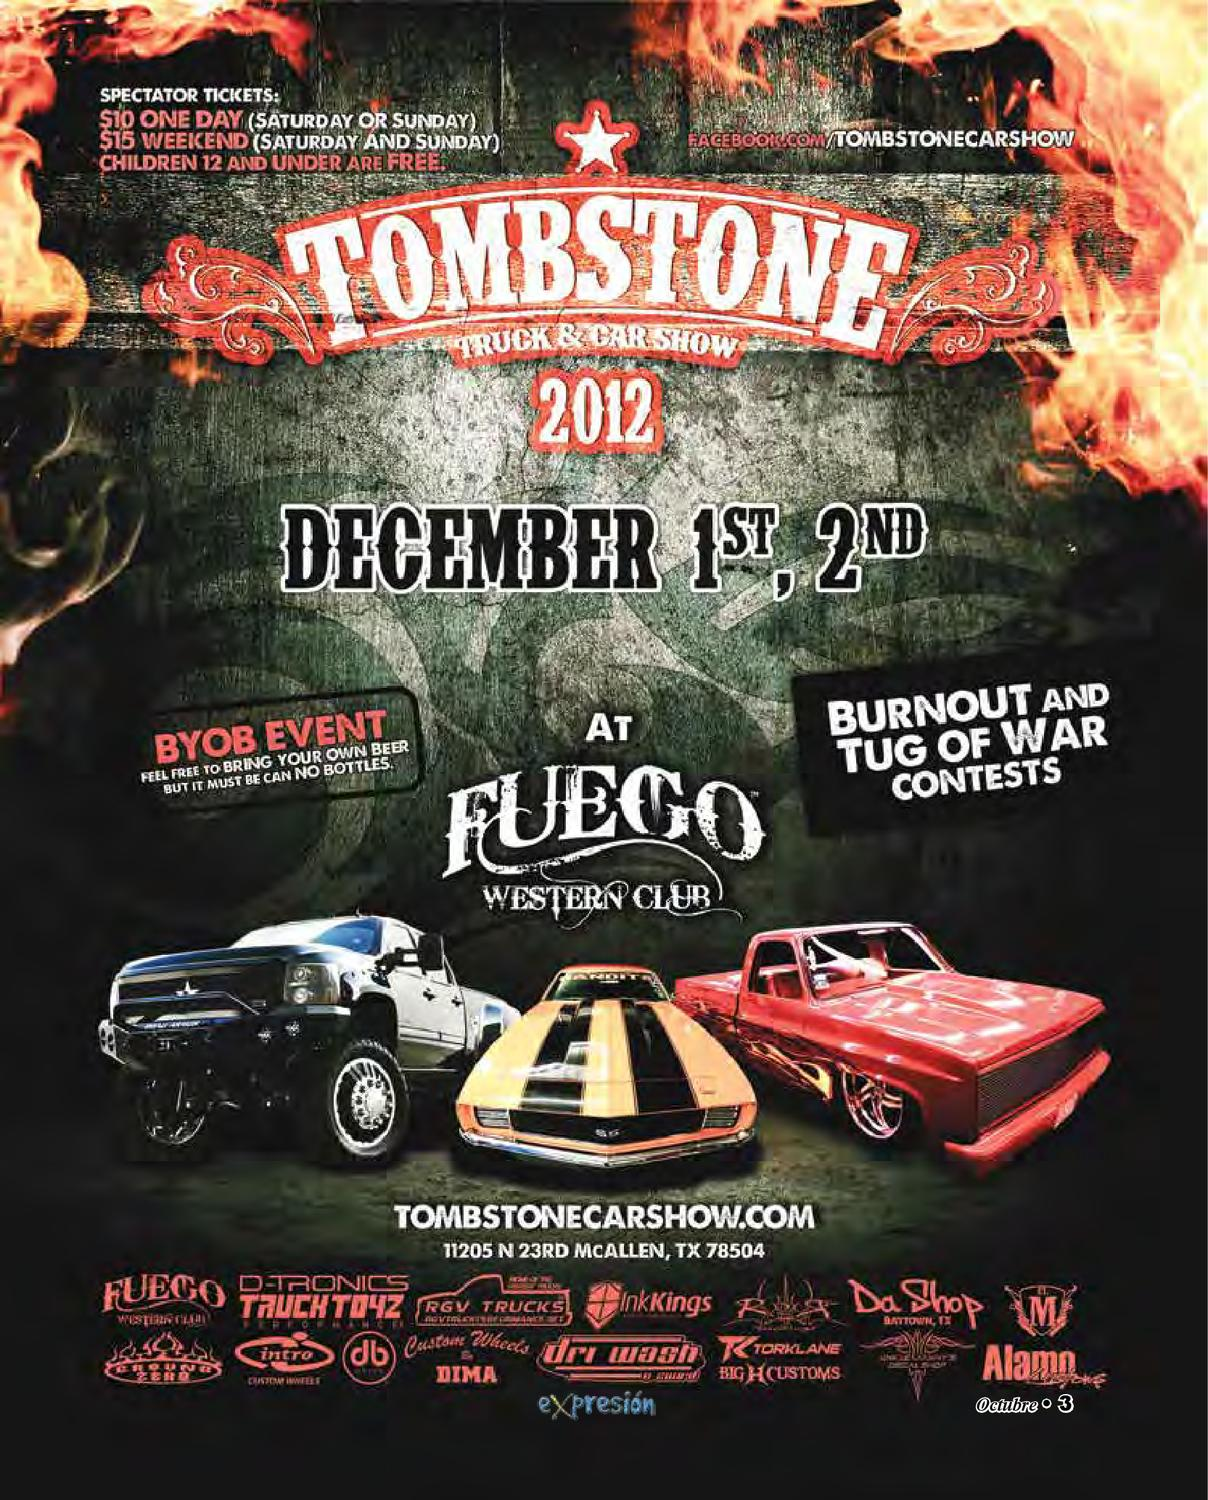 TOMBSTONE Truck Car Show Top Box TicketsTOMBSTONE Truck - How much are the tickets for the car show